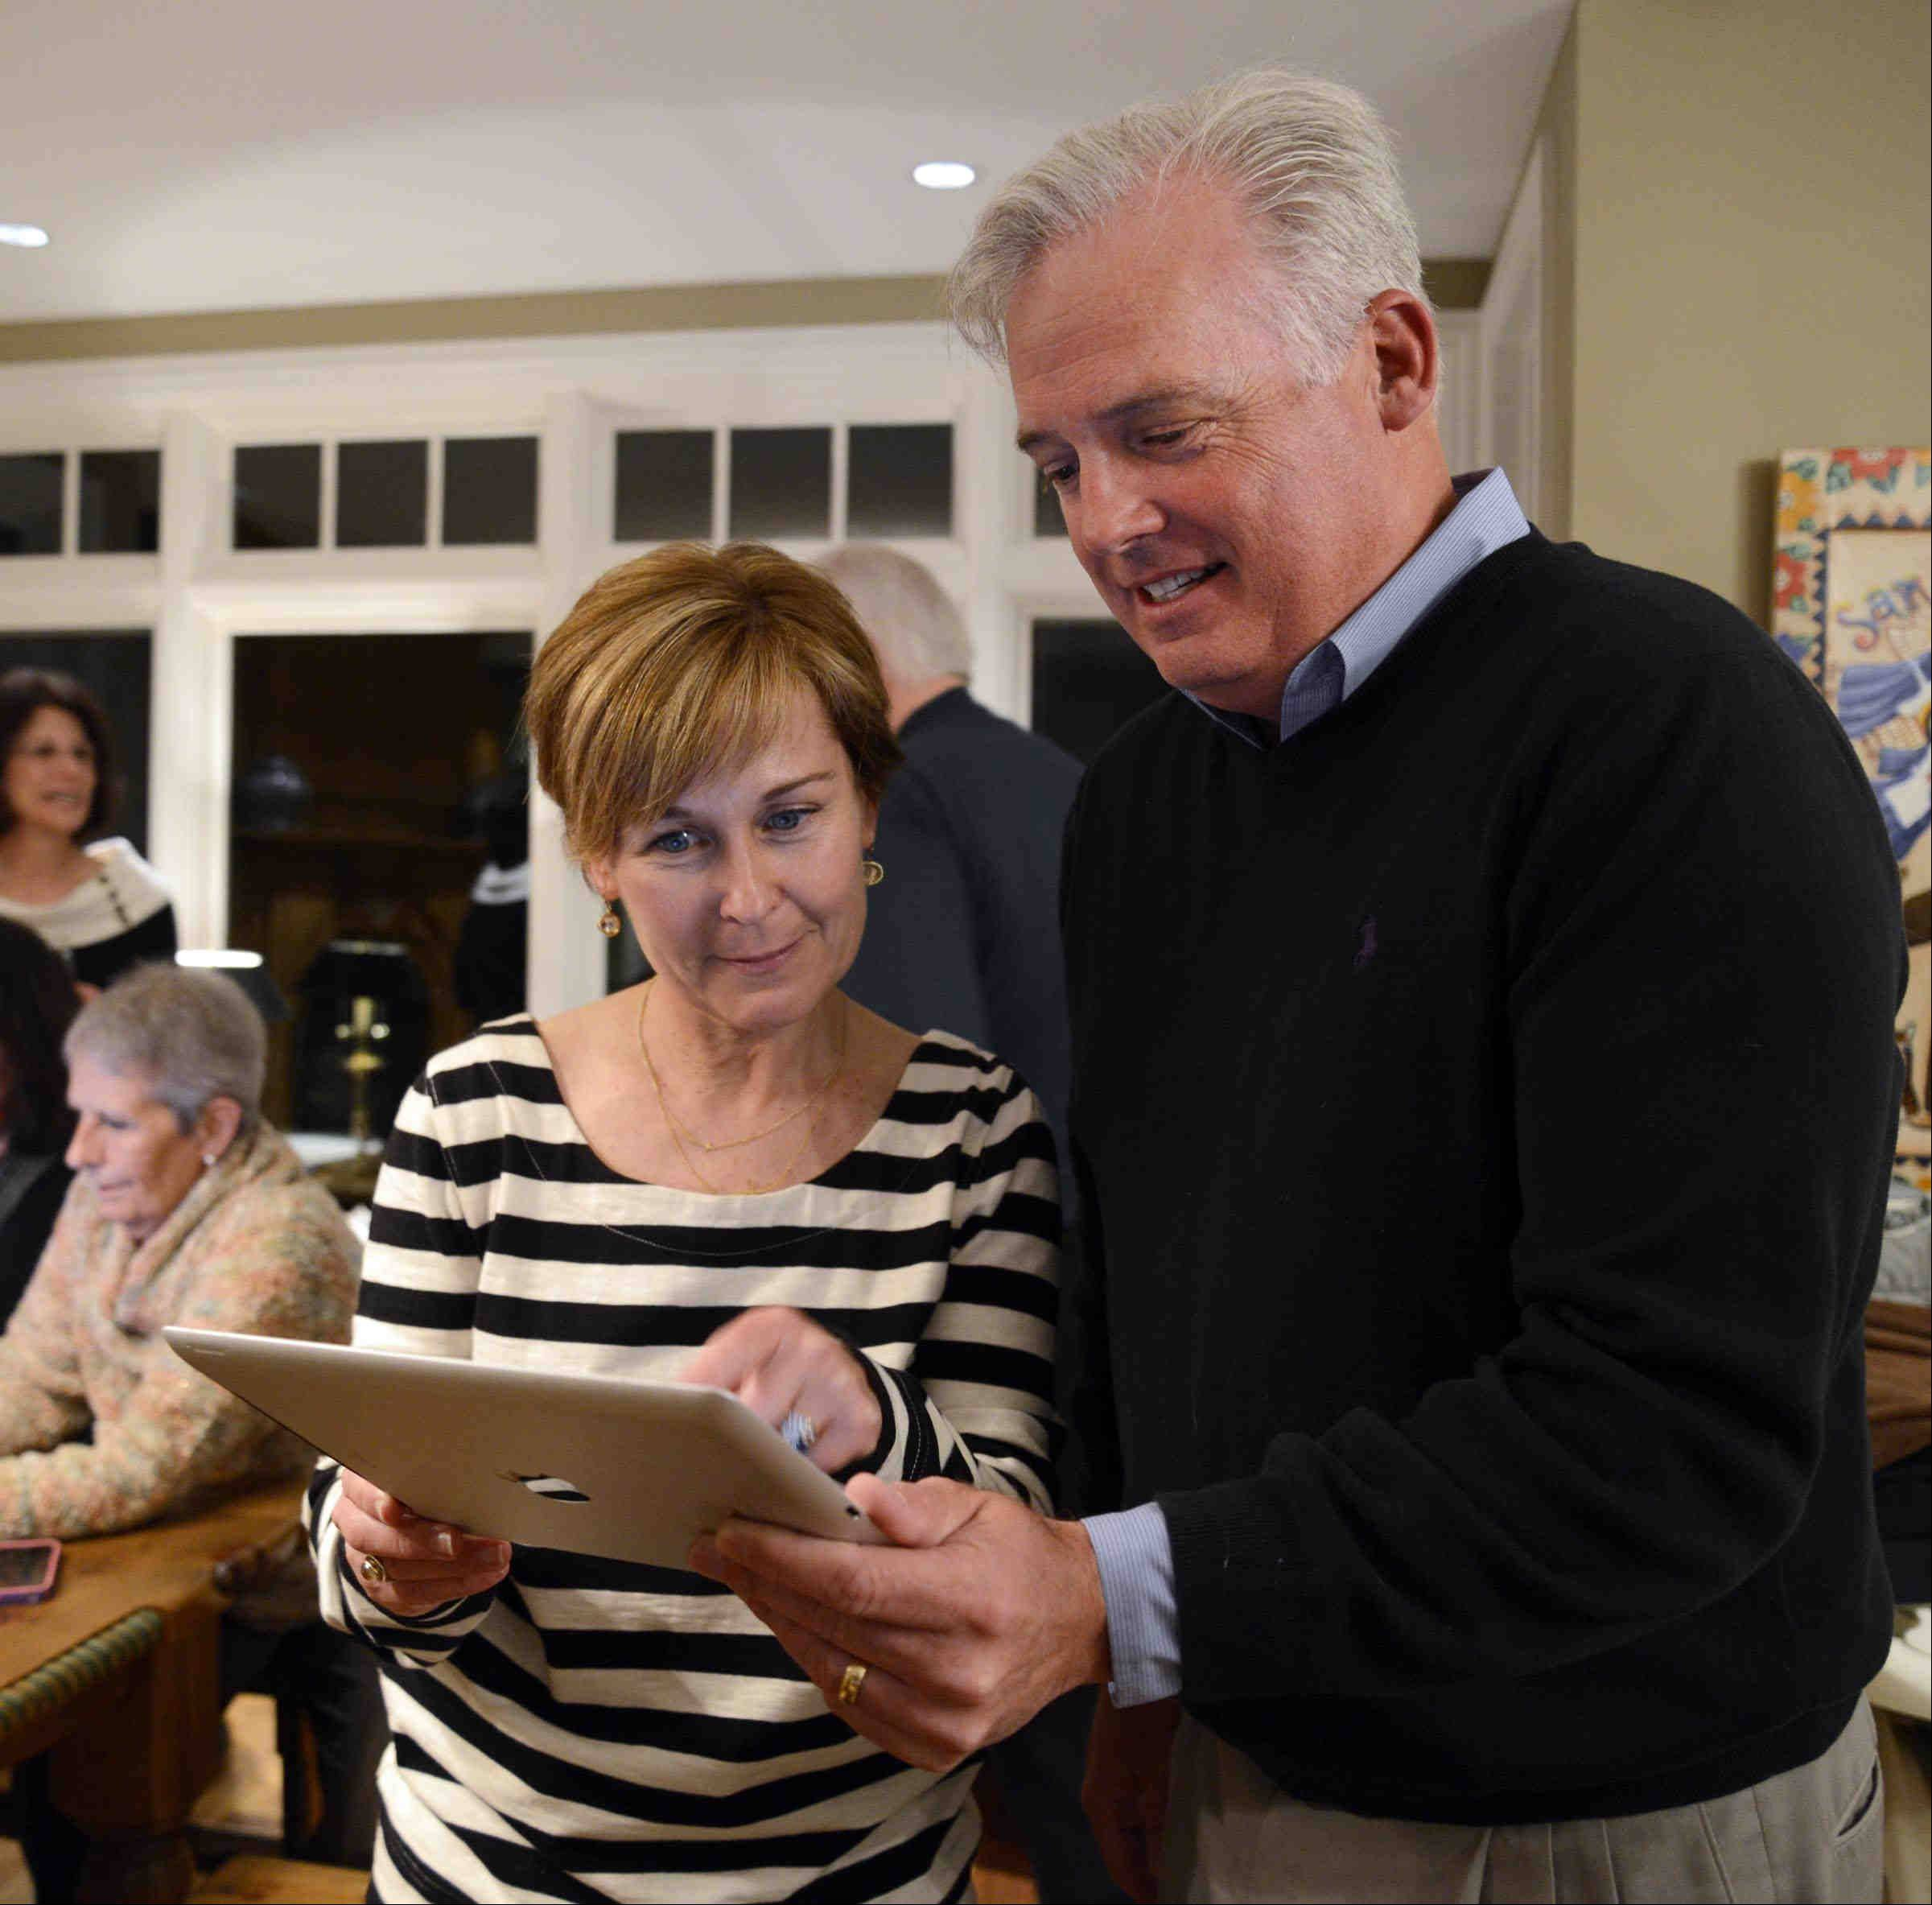 Barrington Hills Village President-elect Martin McLaughlin looks over results Tuesday at his election night party with Trustee-elect Colleen Konicek Hannigan. Both won election and will be sworn into office next month.